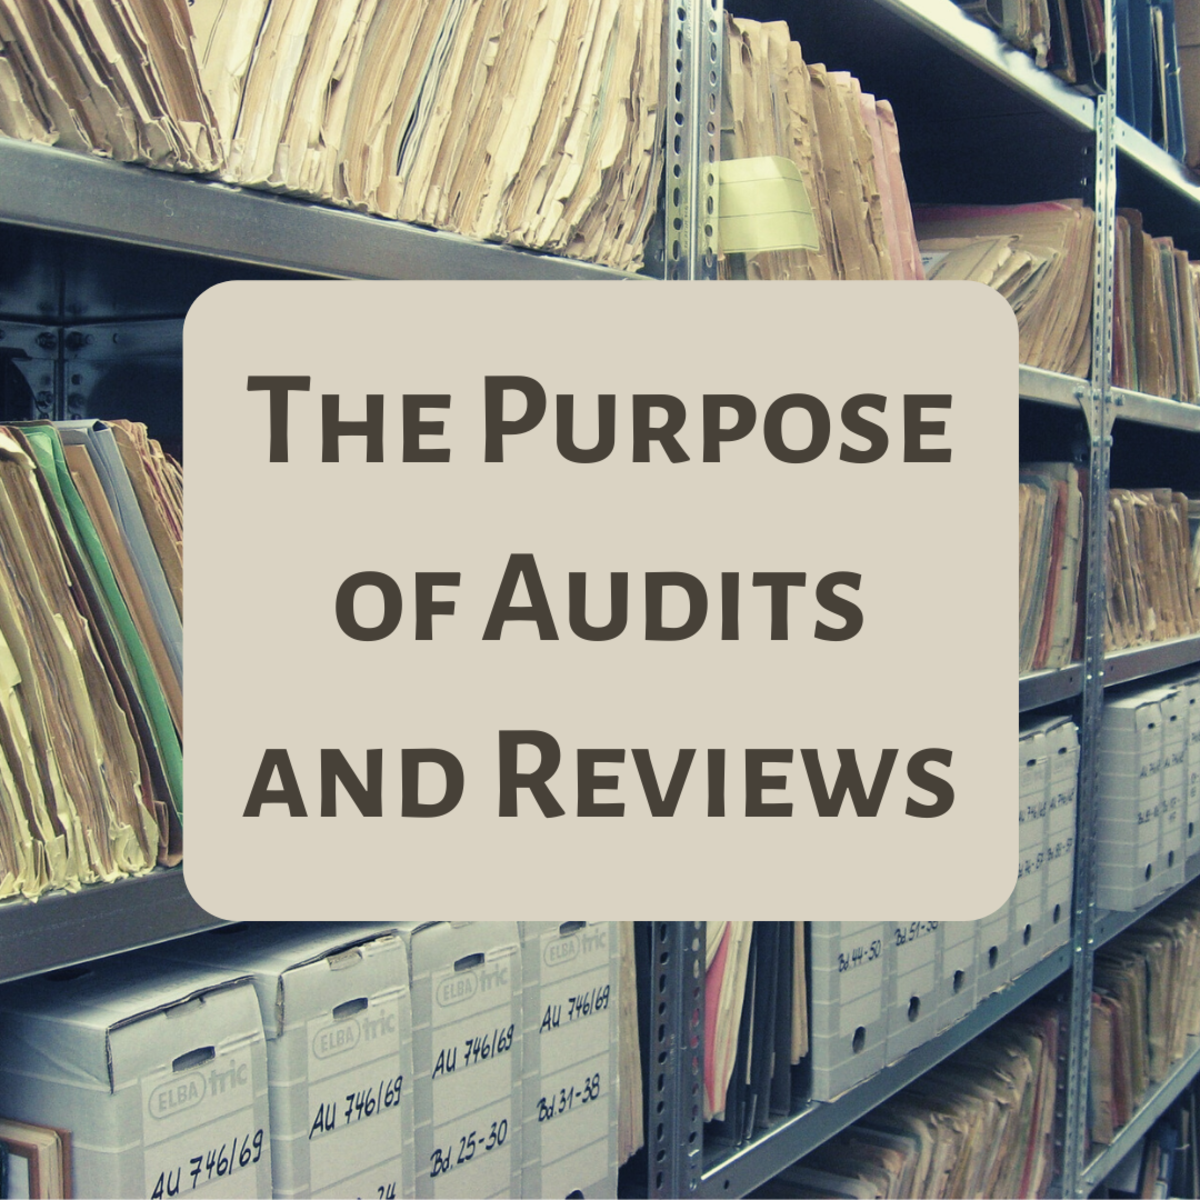 Learn more about the nature, scope and purpose of an audit and review.